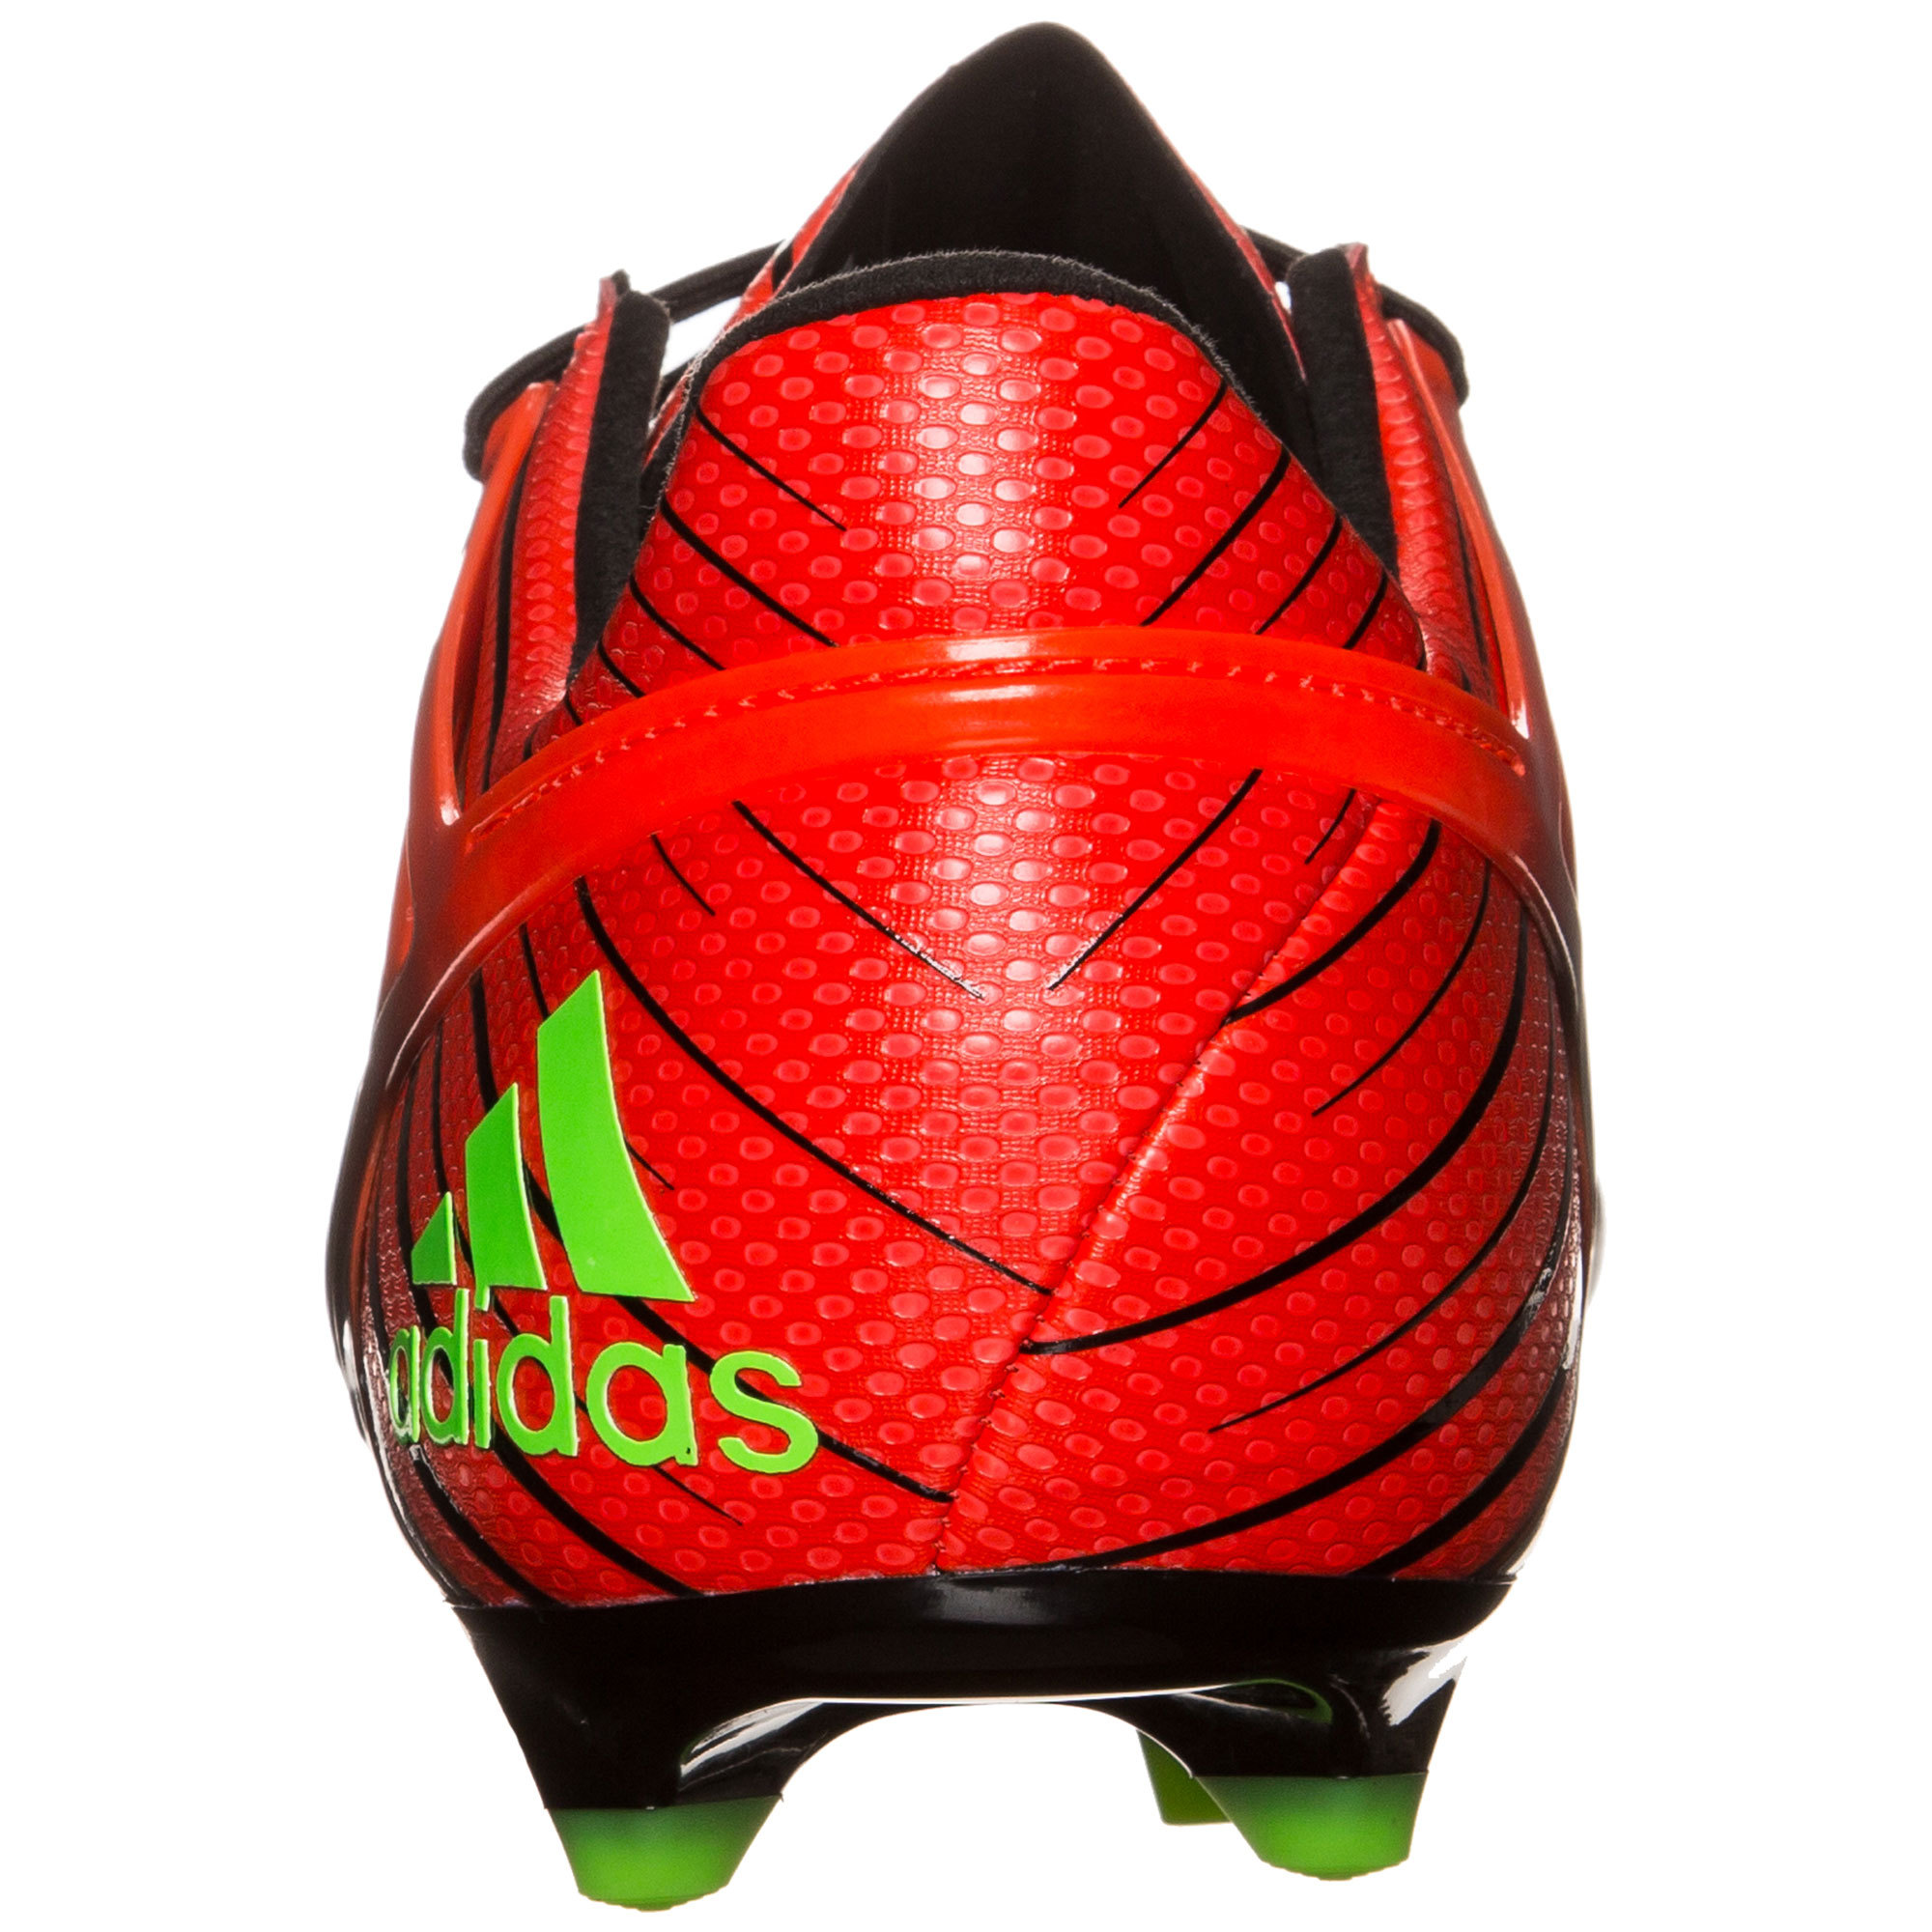 sports shoes dc915 b7874 ... 3 Adidas mens soccer cleats Messi 15,1 AF4654 54 ...